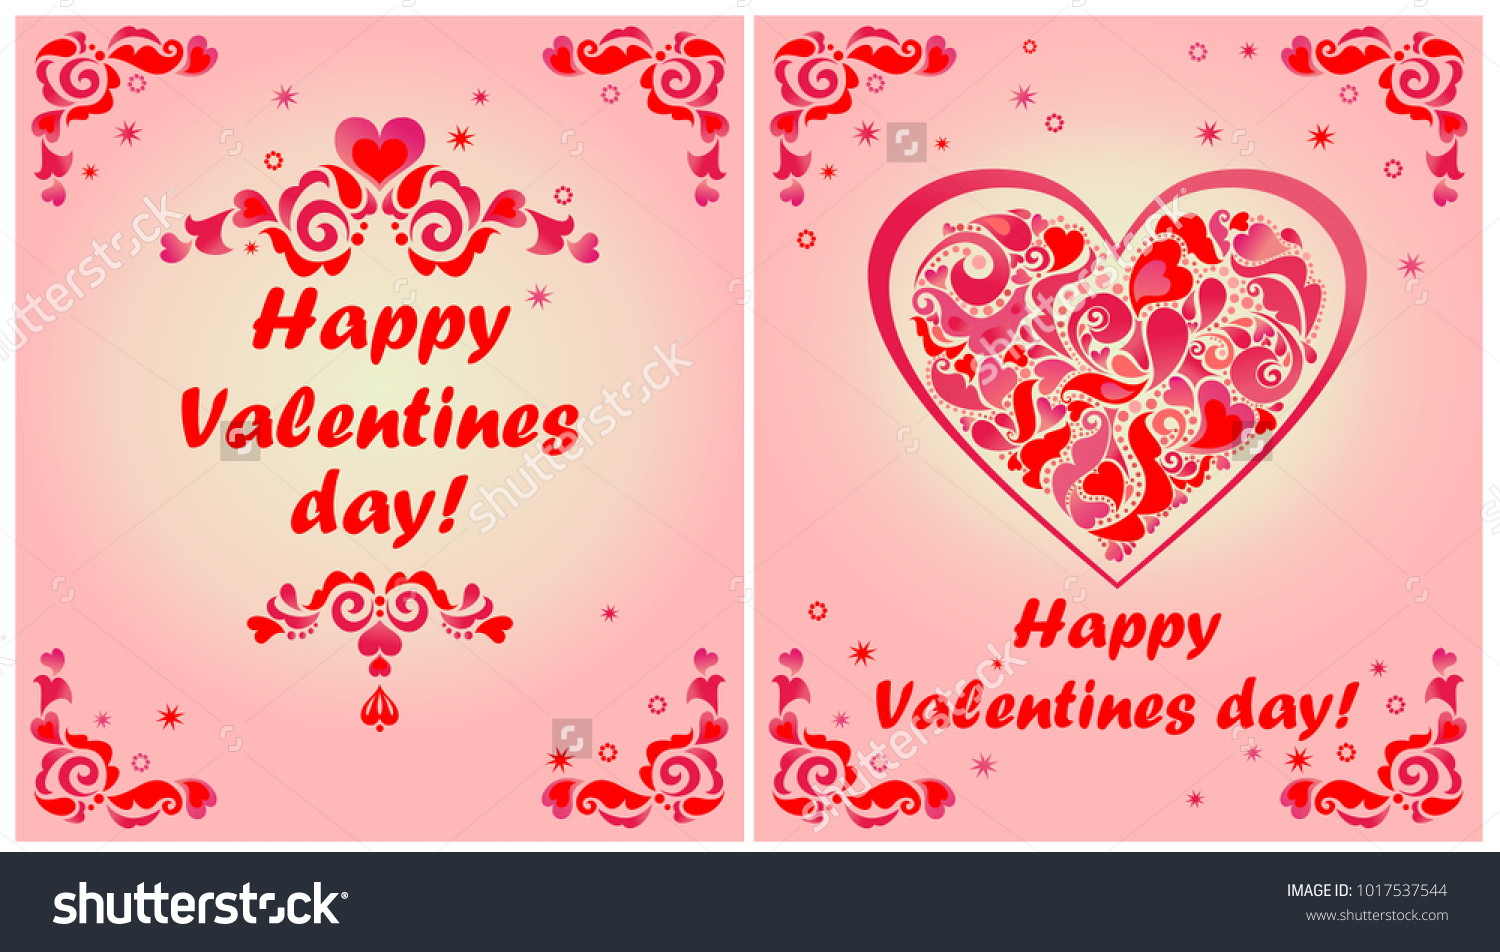 Greeting cards valentines day red floral stock vector royalty free greeting cards for valentines day with red floral decorative borders and heart shape m4hsunfo